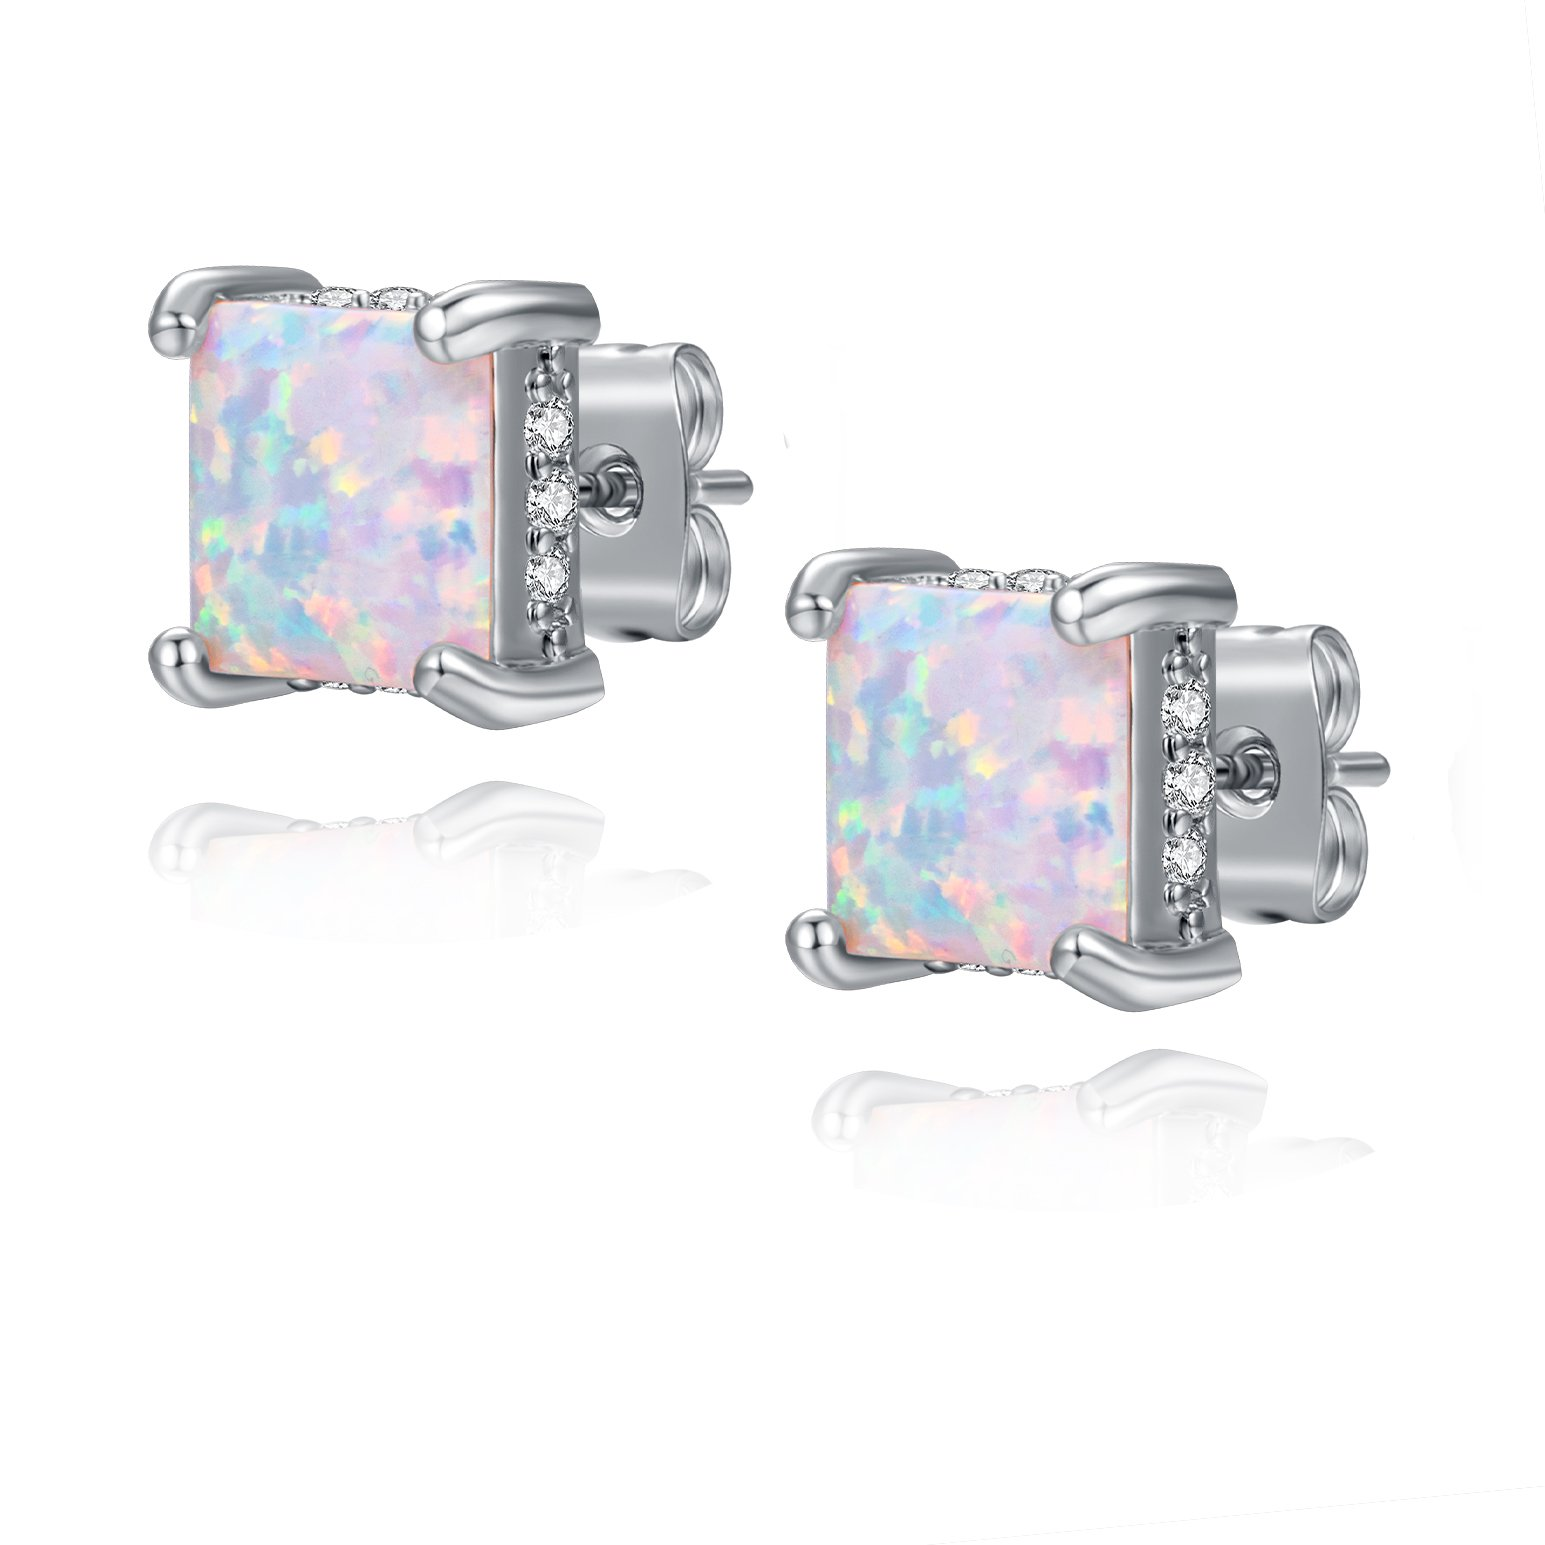 Opal studs 8mm Synthetic White Opal CZ Casual Earrings Princess Square for Women 18K White Gold Plated